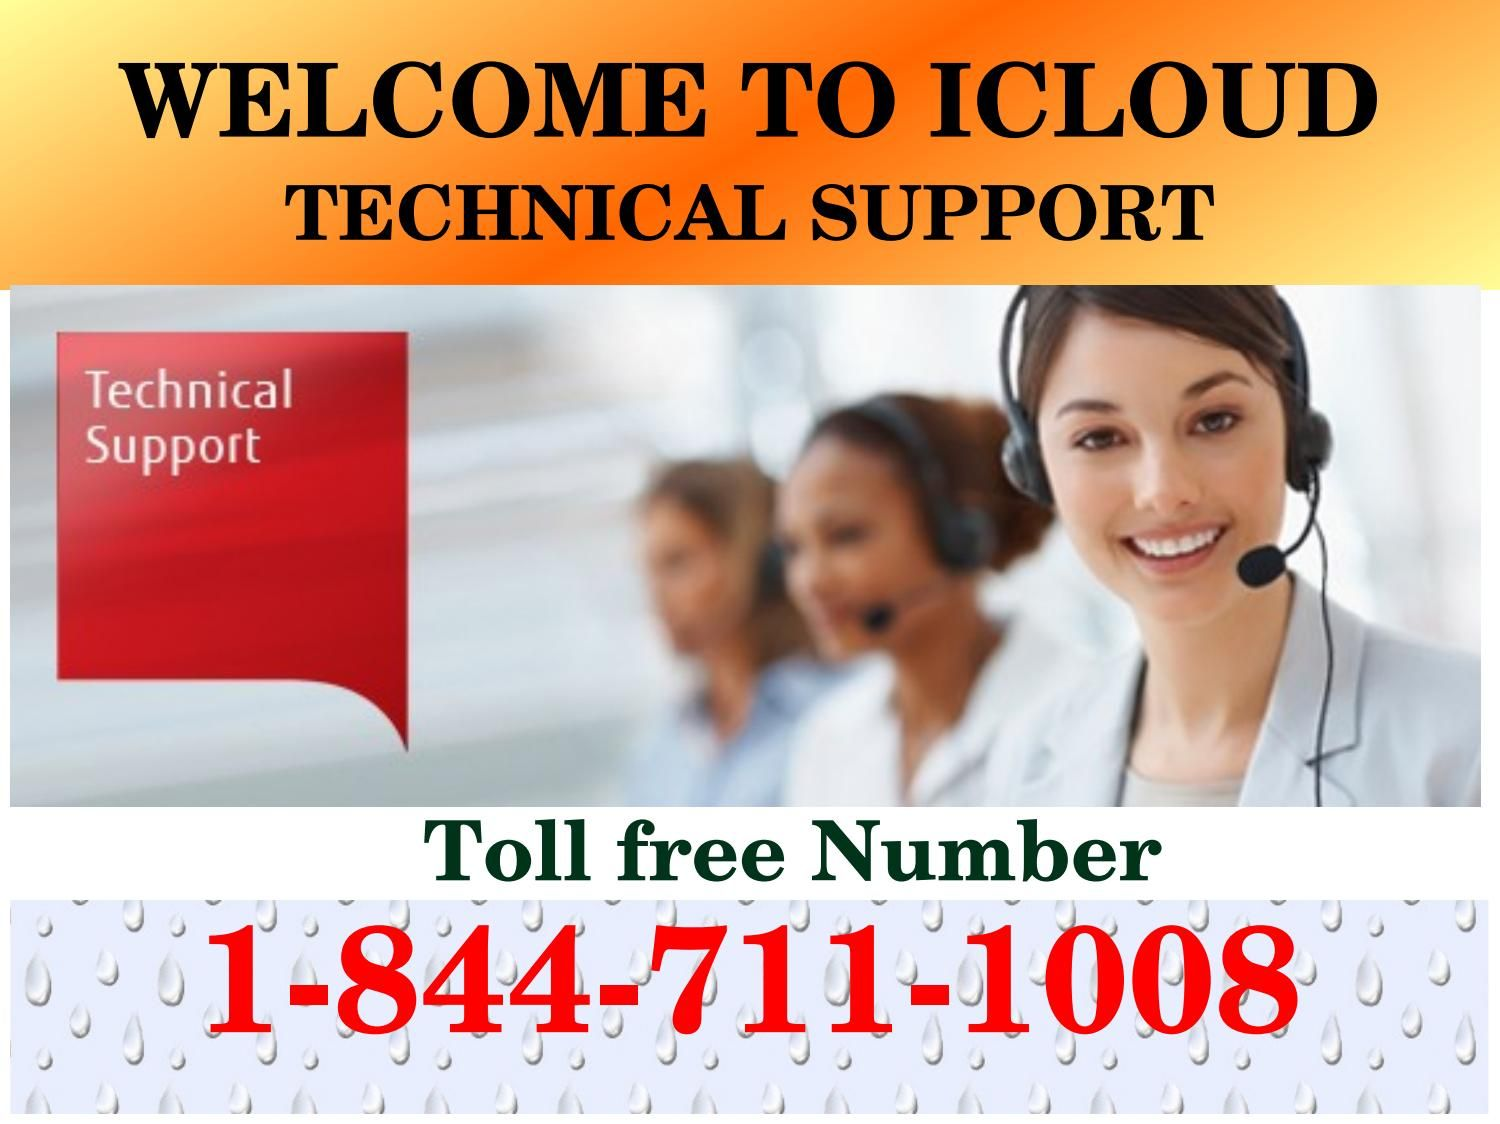 iCloud Technical Support Icloud, Phone numbers, Bell canada